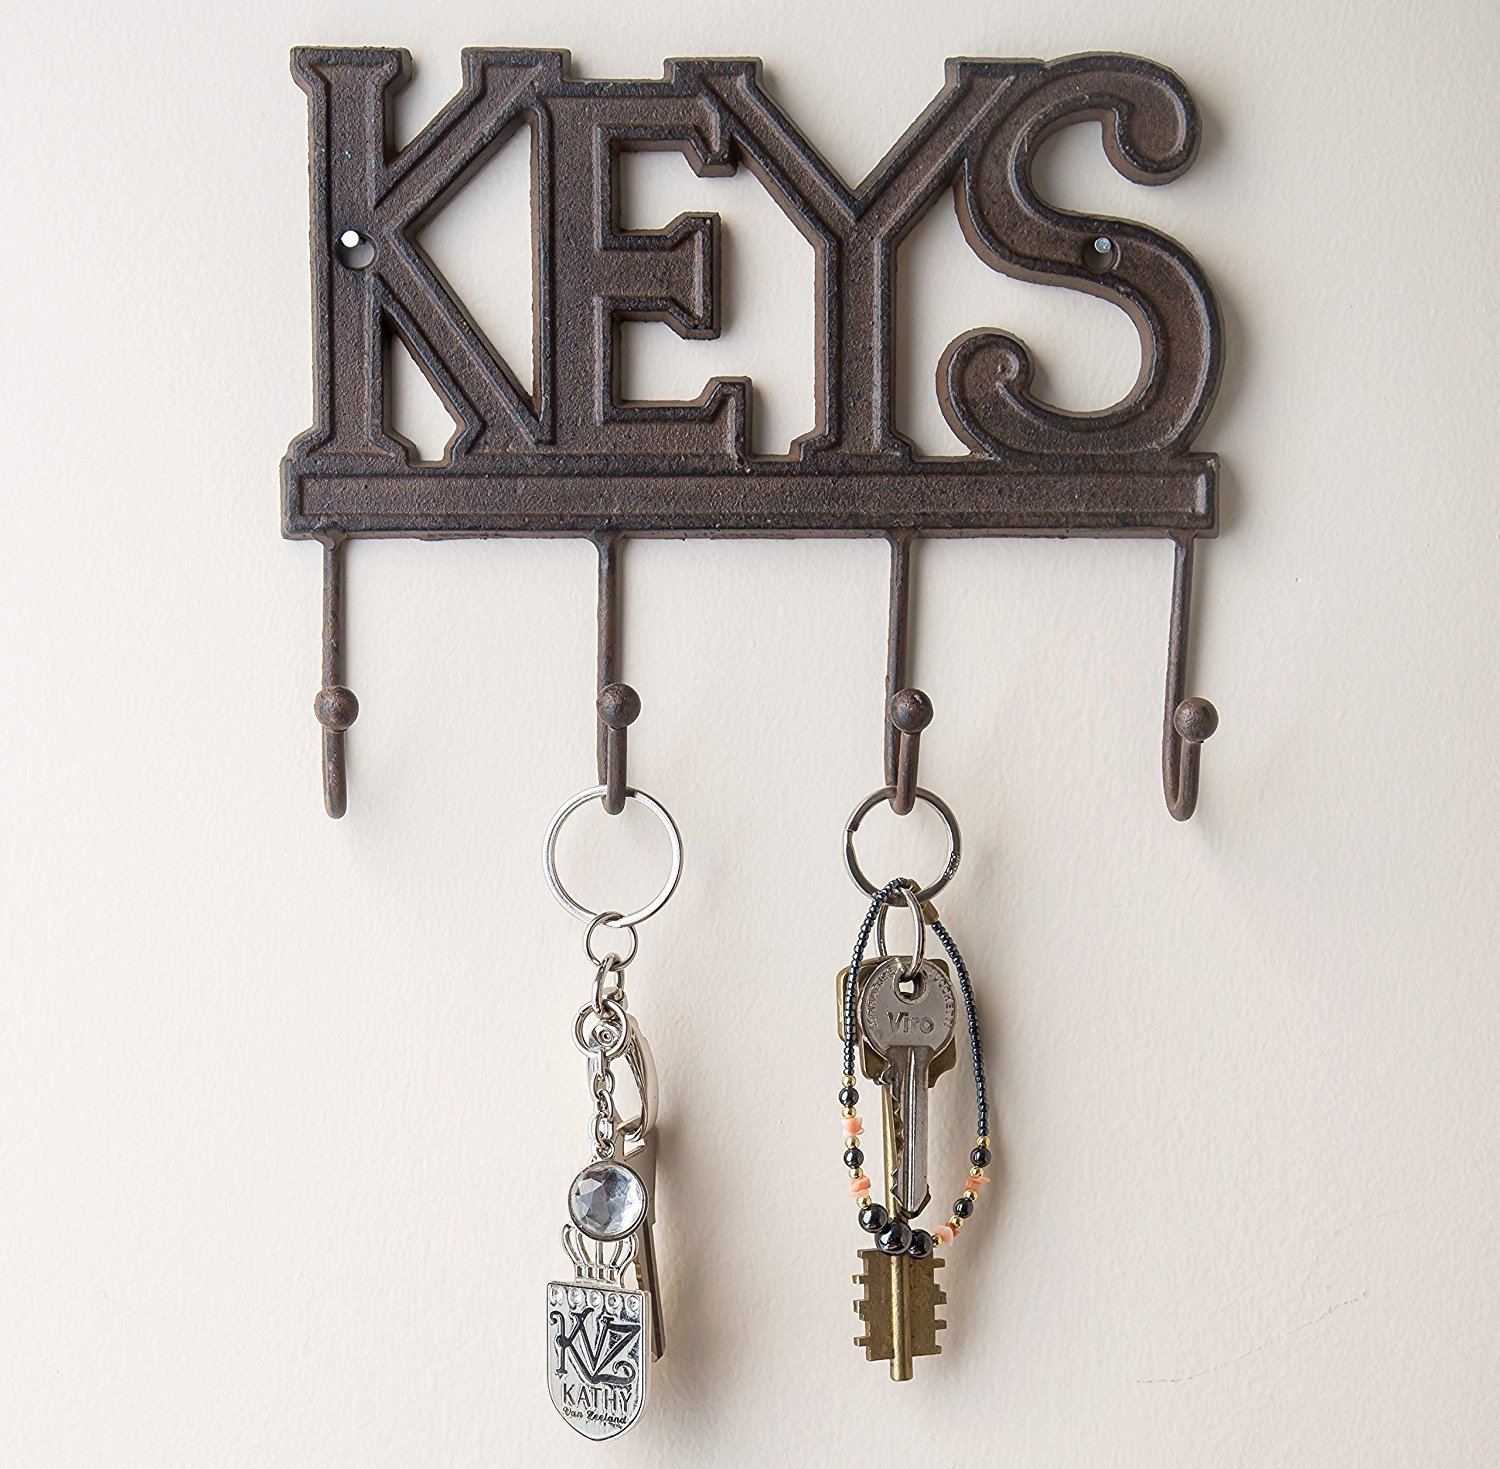 Wooden Key Holder With Shelf Wooden Rack Key Holder For Wall Ideas